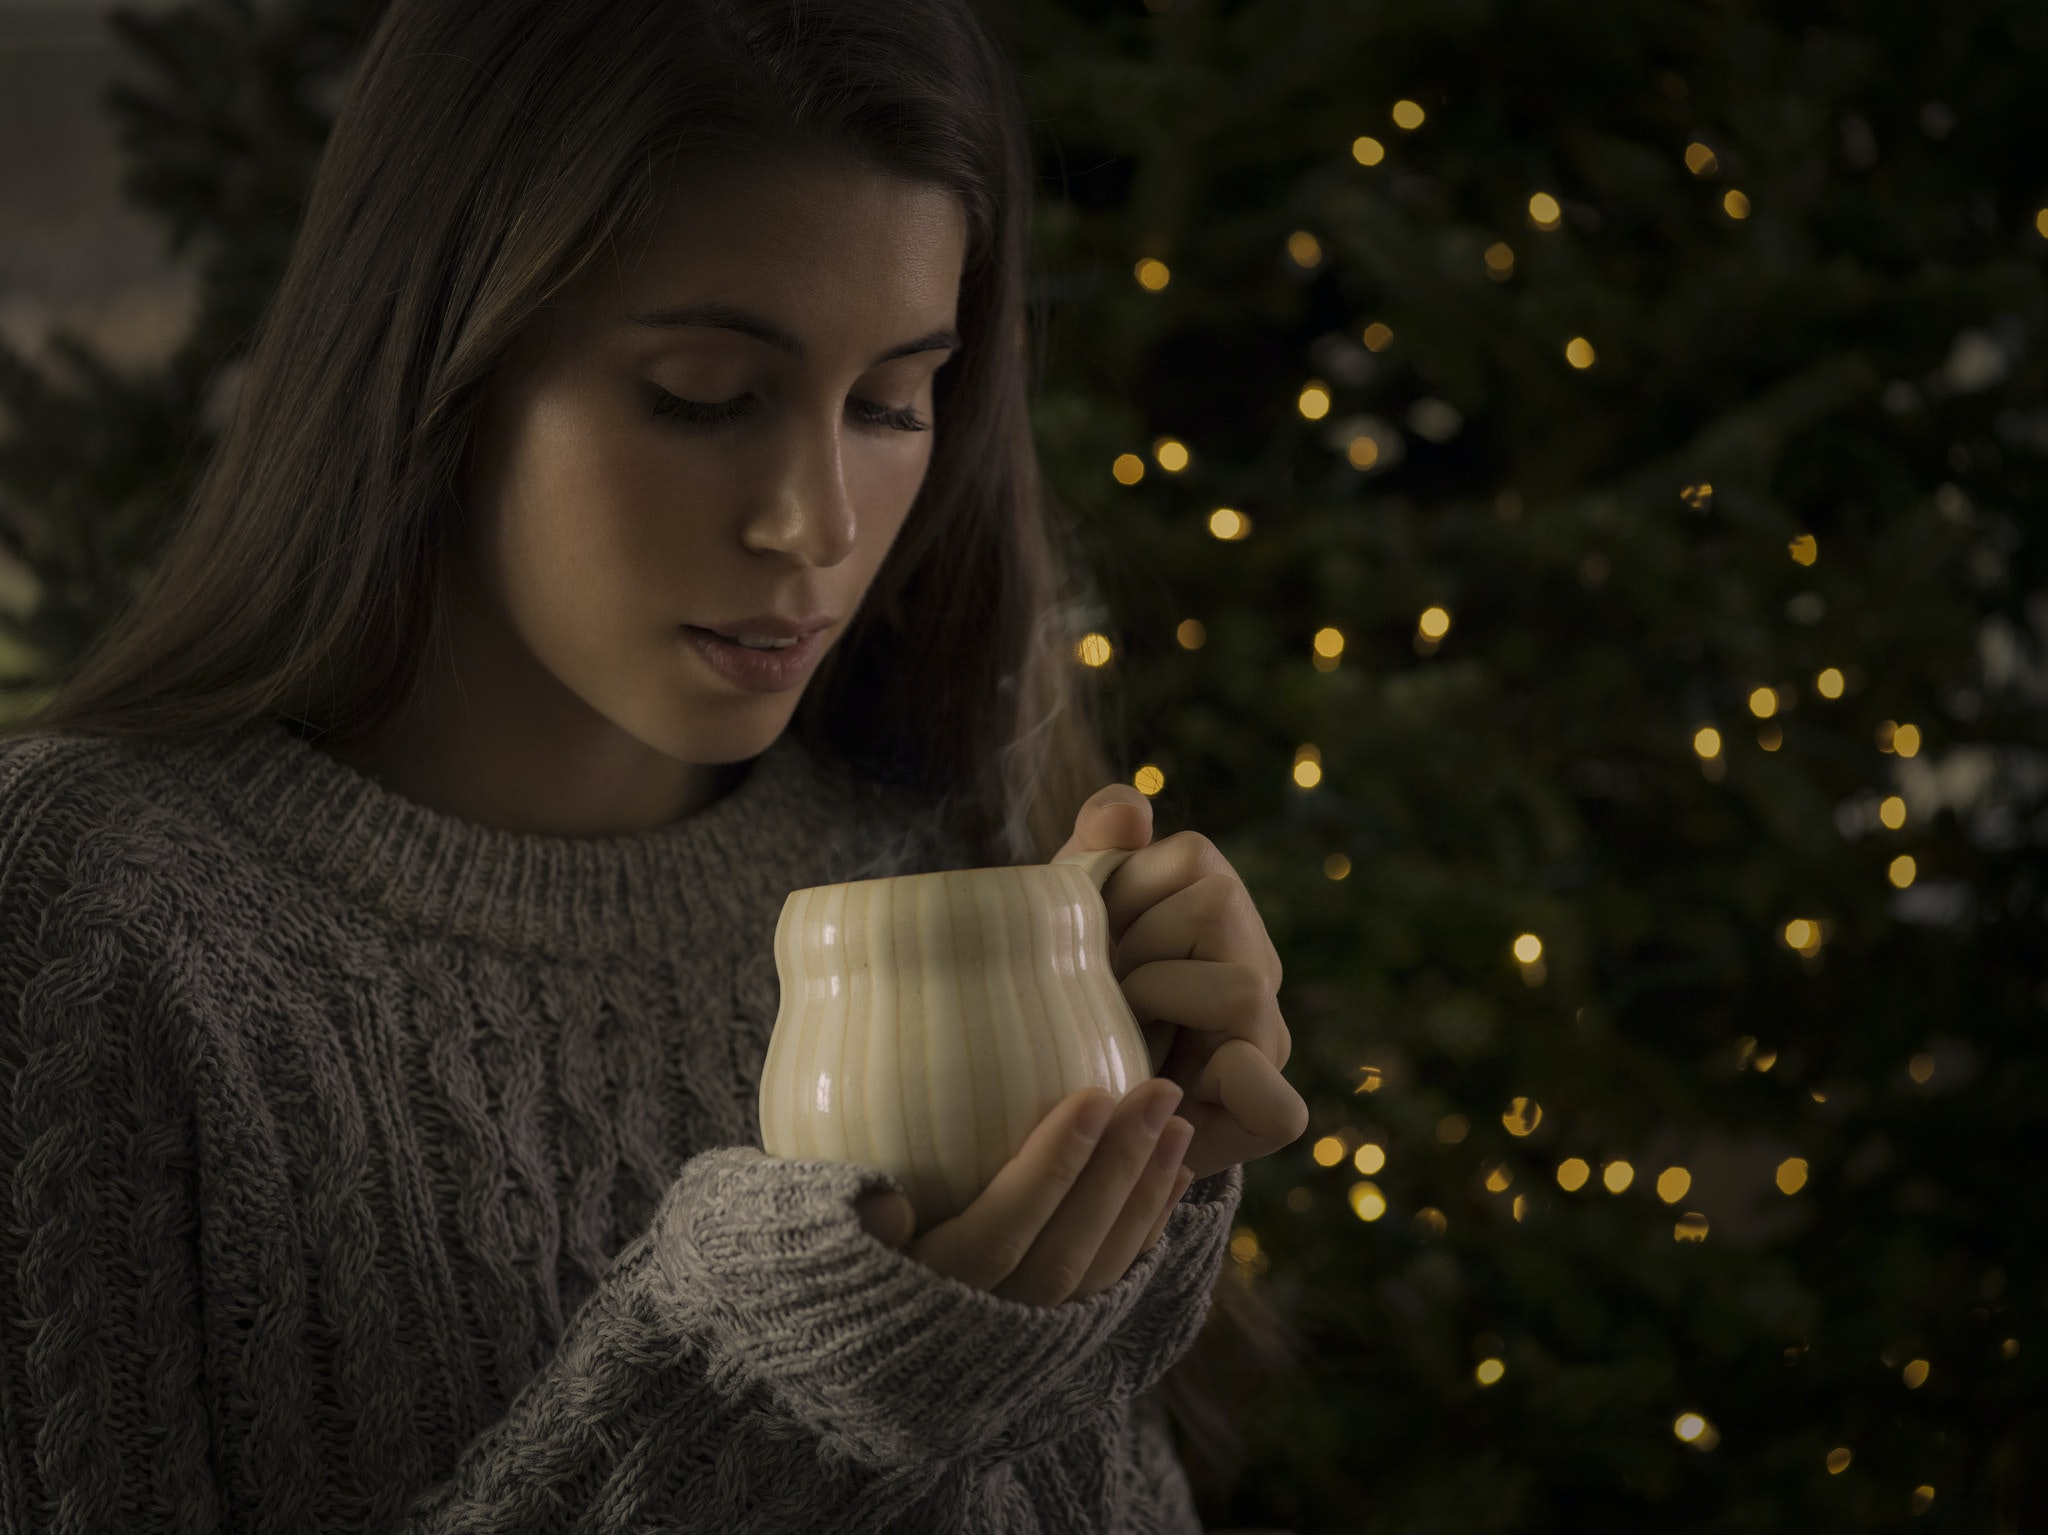 man holding white ceramic mug standing in front of lighted green Christmas tree